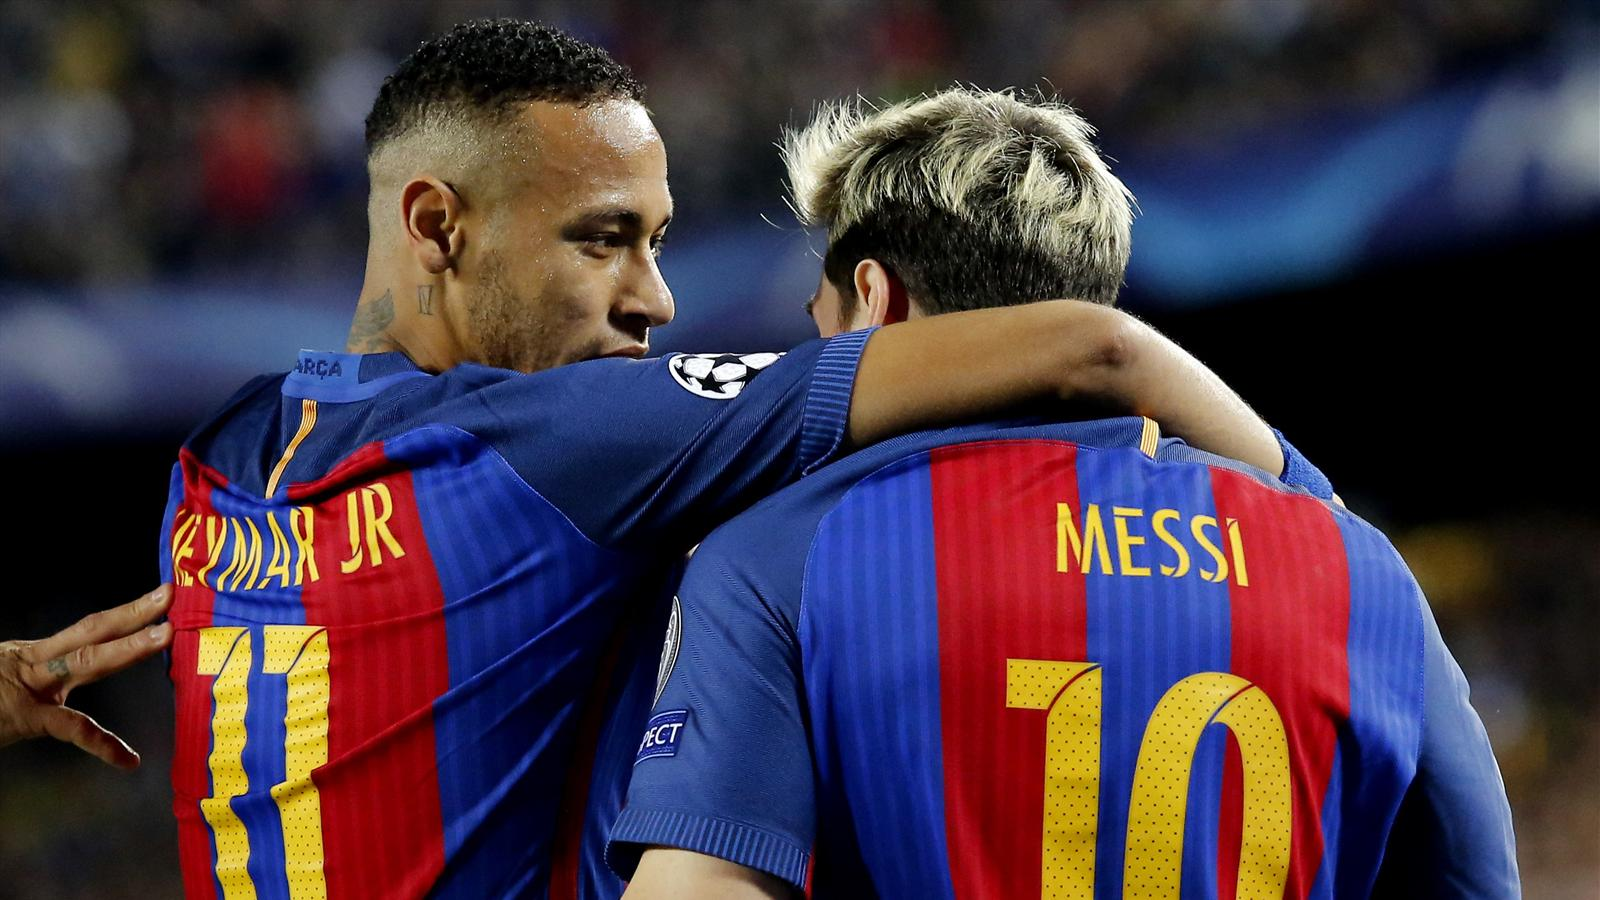 Messi hits hat-trick as Barcelona crush Manchester City at Camp Nou - Champions League 2015-2016 ...